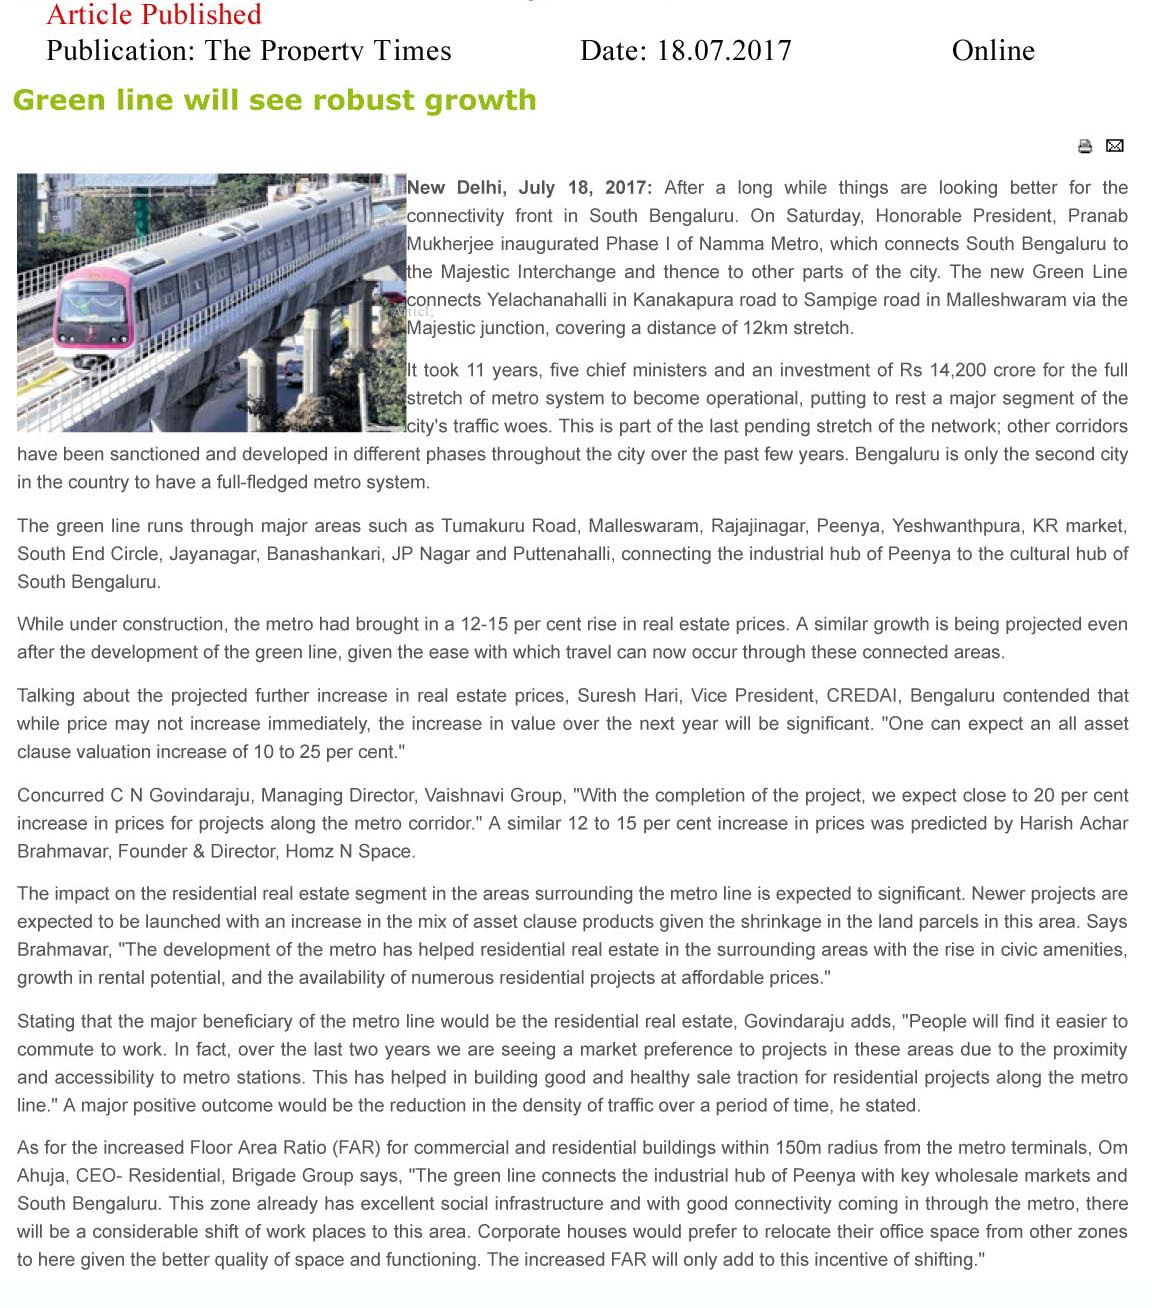 Green line will see robust growth—The Property Times-Online